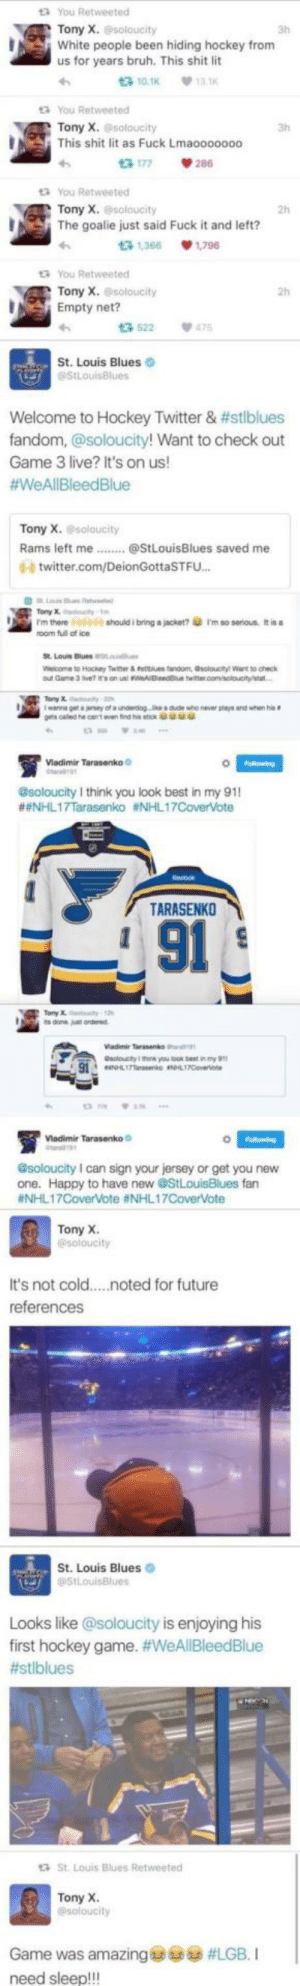 awesomacious:  Wholesome_hockey: t3 You Retweeted  Tony X.soloucity  White people been hiding hockey from  us for years bruh. This shit lit  3h  t3 10.1K  13.1K  t You Retweeted  Tony X. @soloucity  This shit lit as Fuck Lmaooo0000  13 177  tYou Retweeted  Tony X.@soloucity  2h  The goalie just said Fuck it and left?  t3 1,366  1.796  t3 You Retweeted  Tony X. @soloucity  Empty net?  13 522  475  St. Louis Blues  StLouisBlues  Welcome to Hockey Twitter & #stlblues  fandom, @soloucity! Want to check out  Game 3 live? It's on us!  #WeAllBleedBlue  Tony X. soloucity  Rams left me.  @StLouisBlues saved me  0- twitter.com/DeionGottaSTFU...  Falowing  esoloucity I think you oo my 91  #NHL17Tarasenko #NHL17CoverVote  TARASENKO  91  @soloucity I can sign your jersey of get you hew  fan  #NHL17CoverVote #NHL17CoverVote  Tony X  @soloucity  It's not cold  .noted for future  references  St. Louis Blues  @StLouisBlues  Looks like @soloucity is enjoying his  first hockey game. #WeAllBleedBlue  #stlblues  St. Louis Blues Retweeted  Tony X.  @soloucity  Game was amazing  #LGB. I  need sleep!!! awesomacious:  Wholesome_hockey